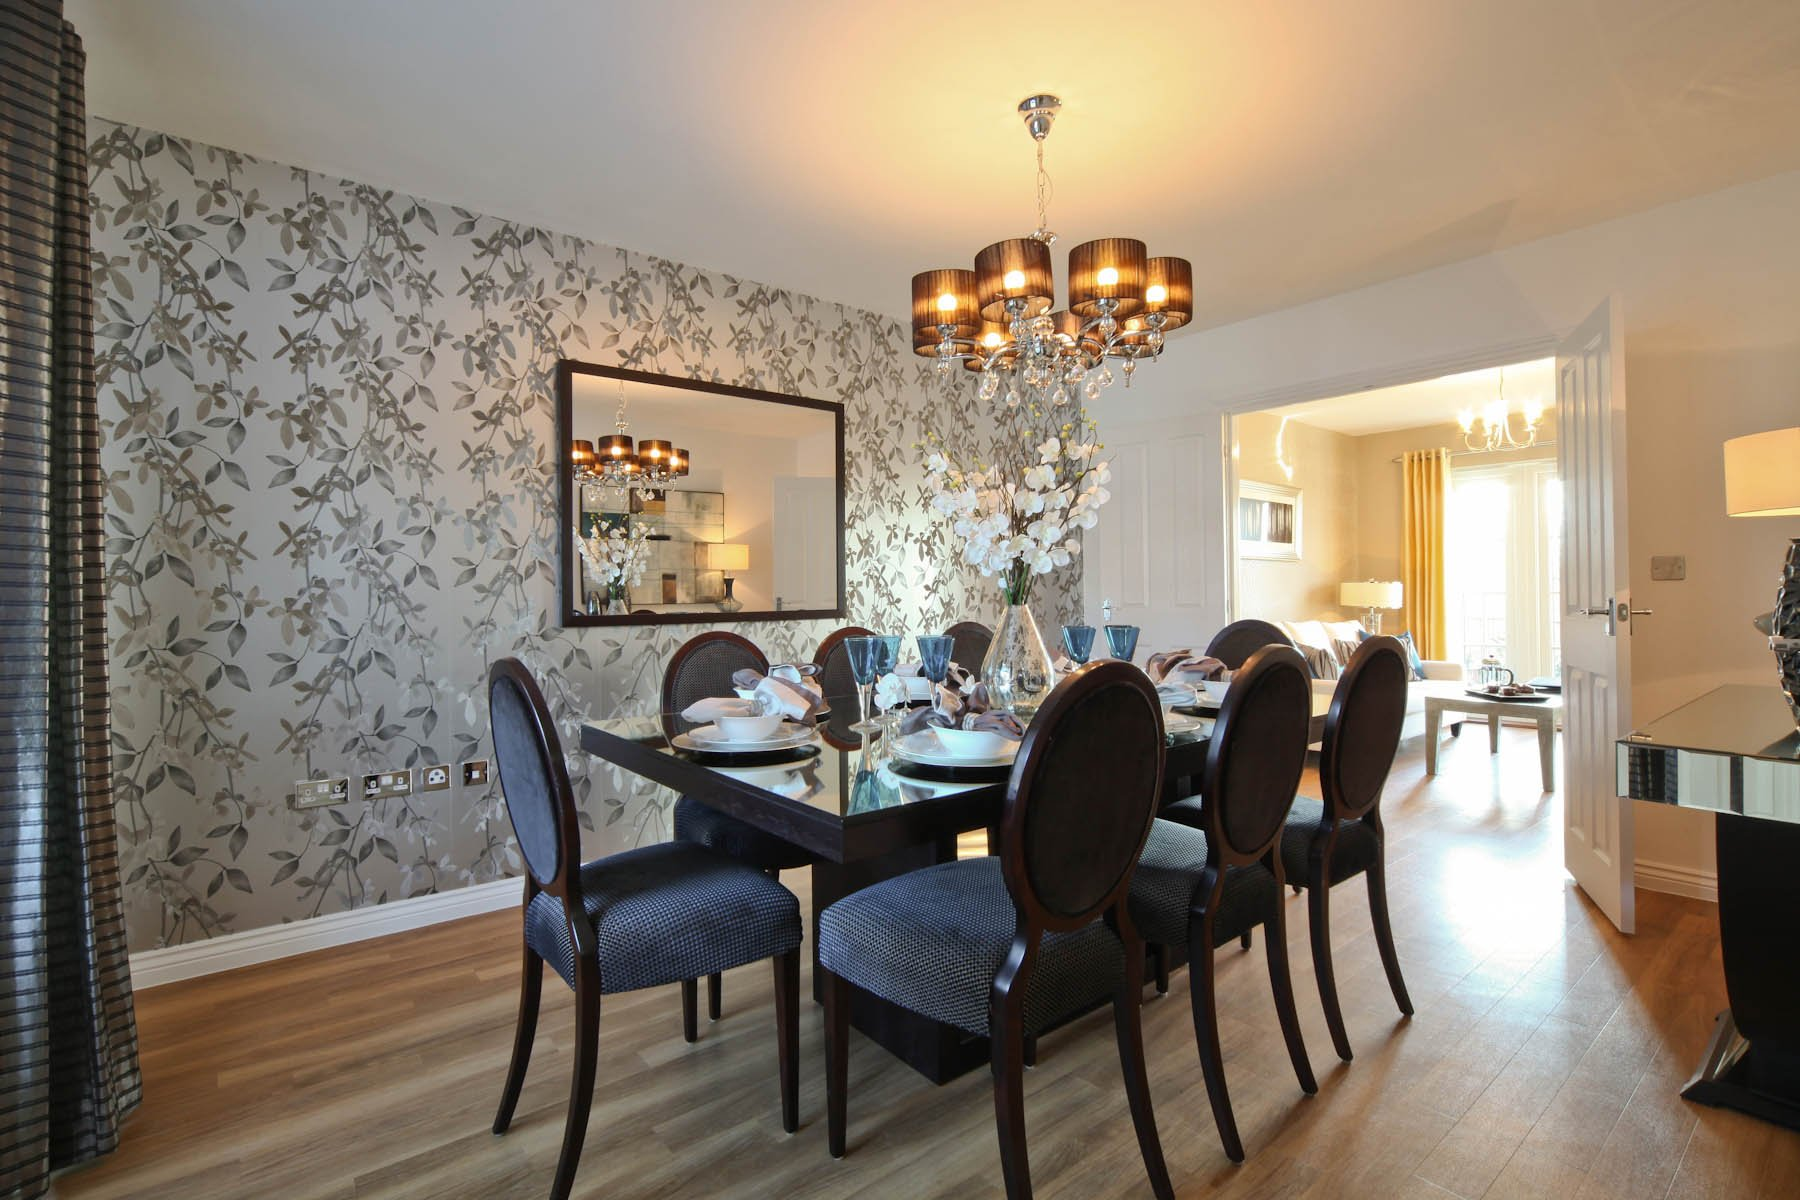 Taylor Wimpey typical dining room